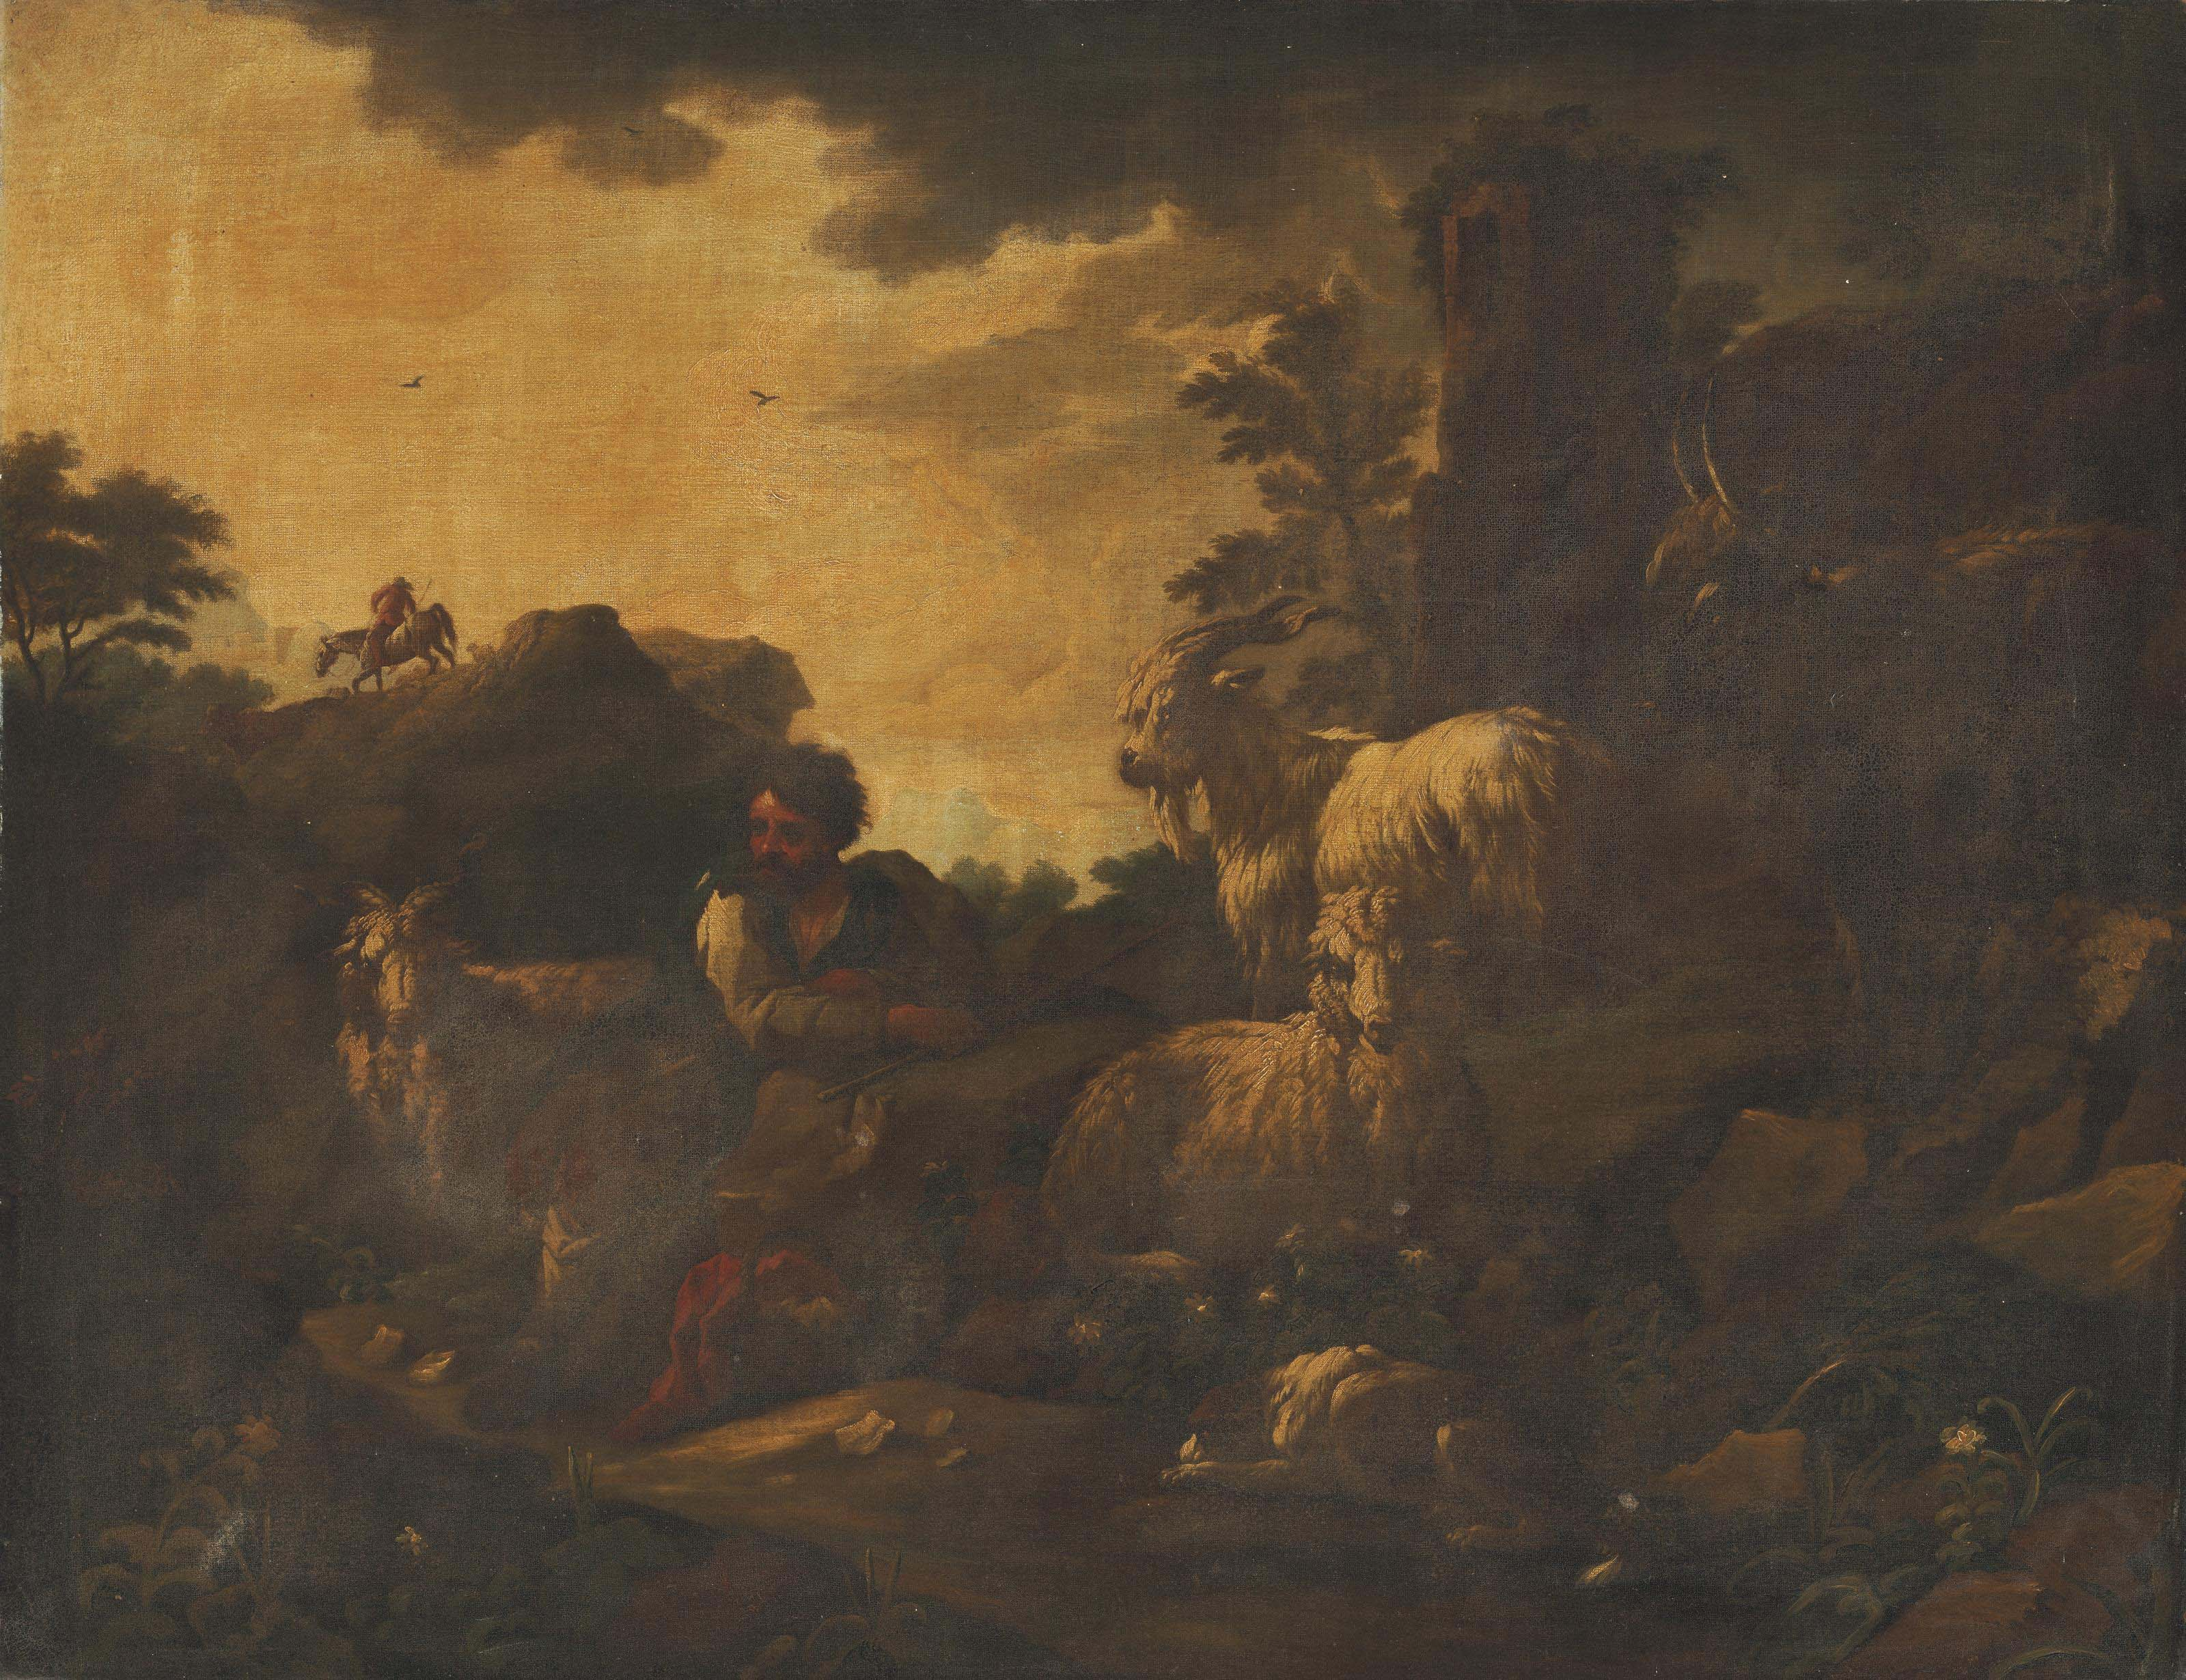 An Italianate wooded landscape with a goatherd and his flock in the foreground